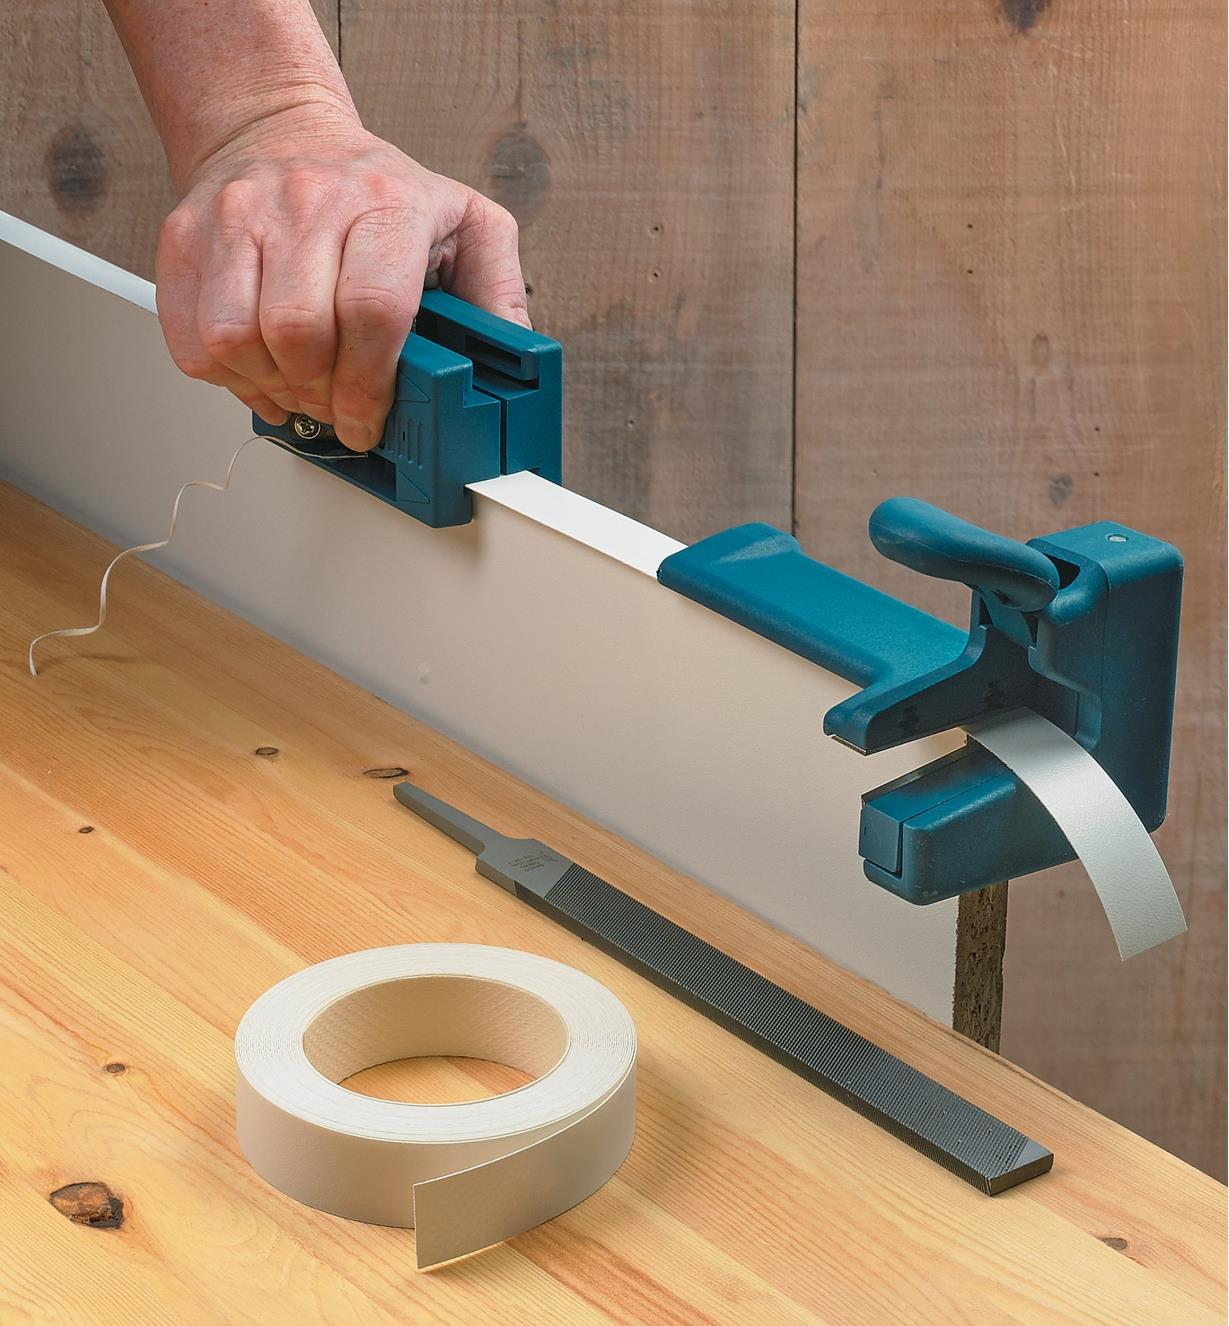 Laminate Trimmers